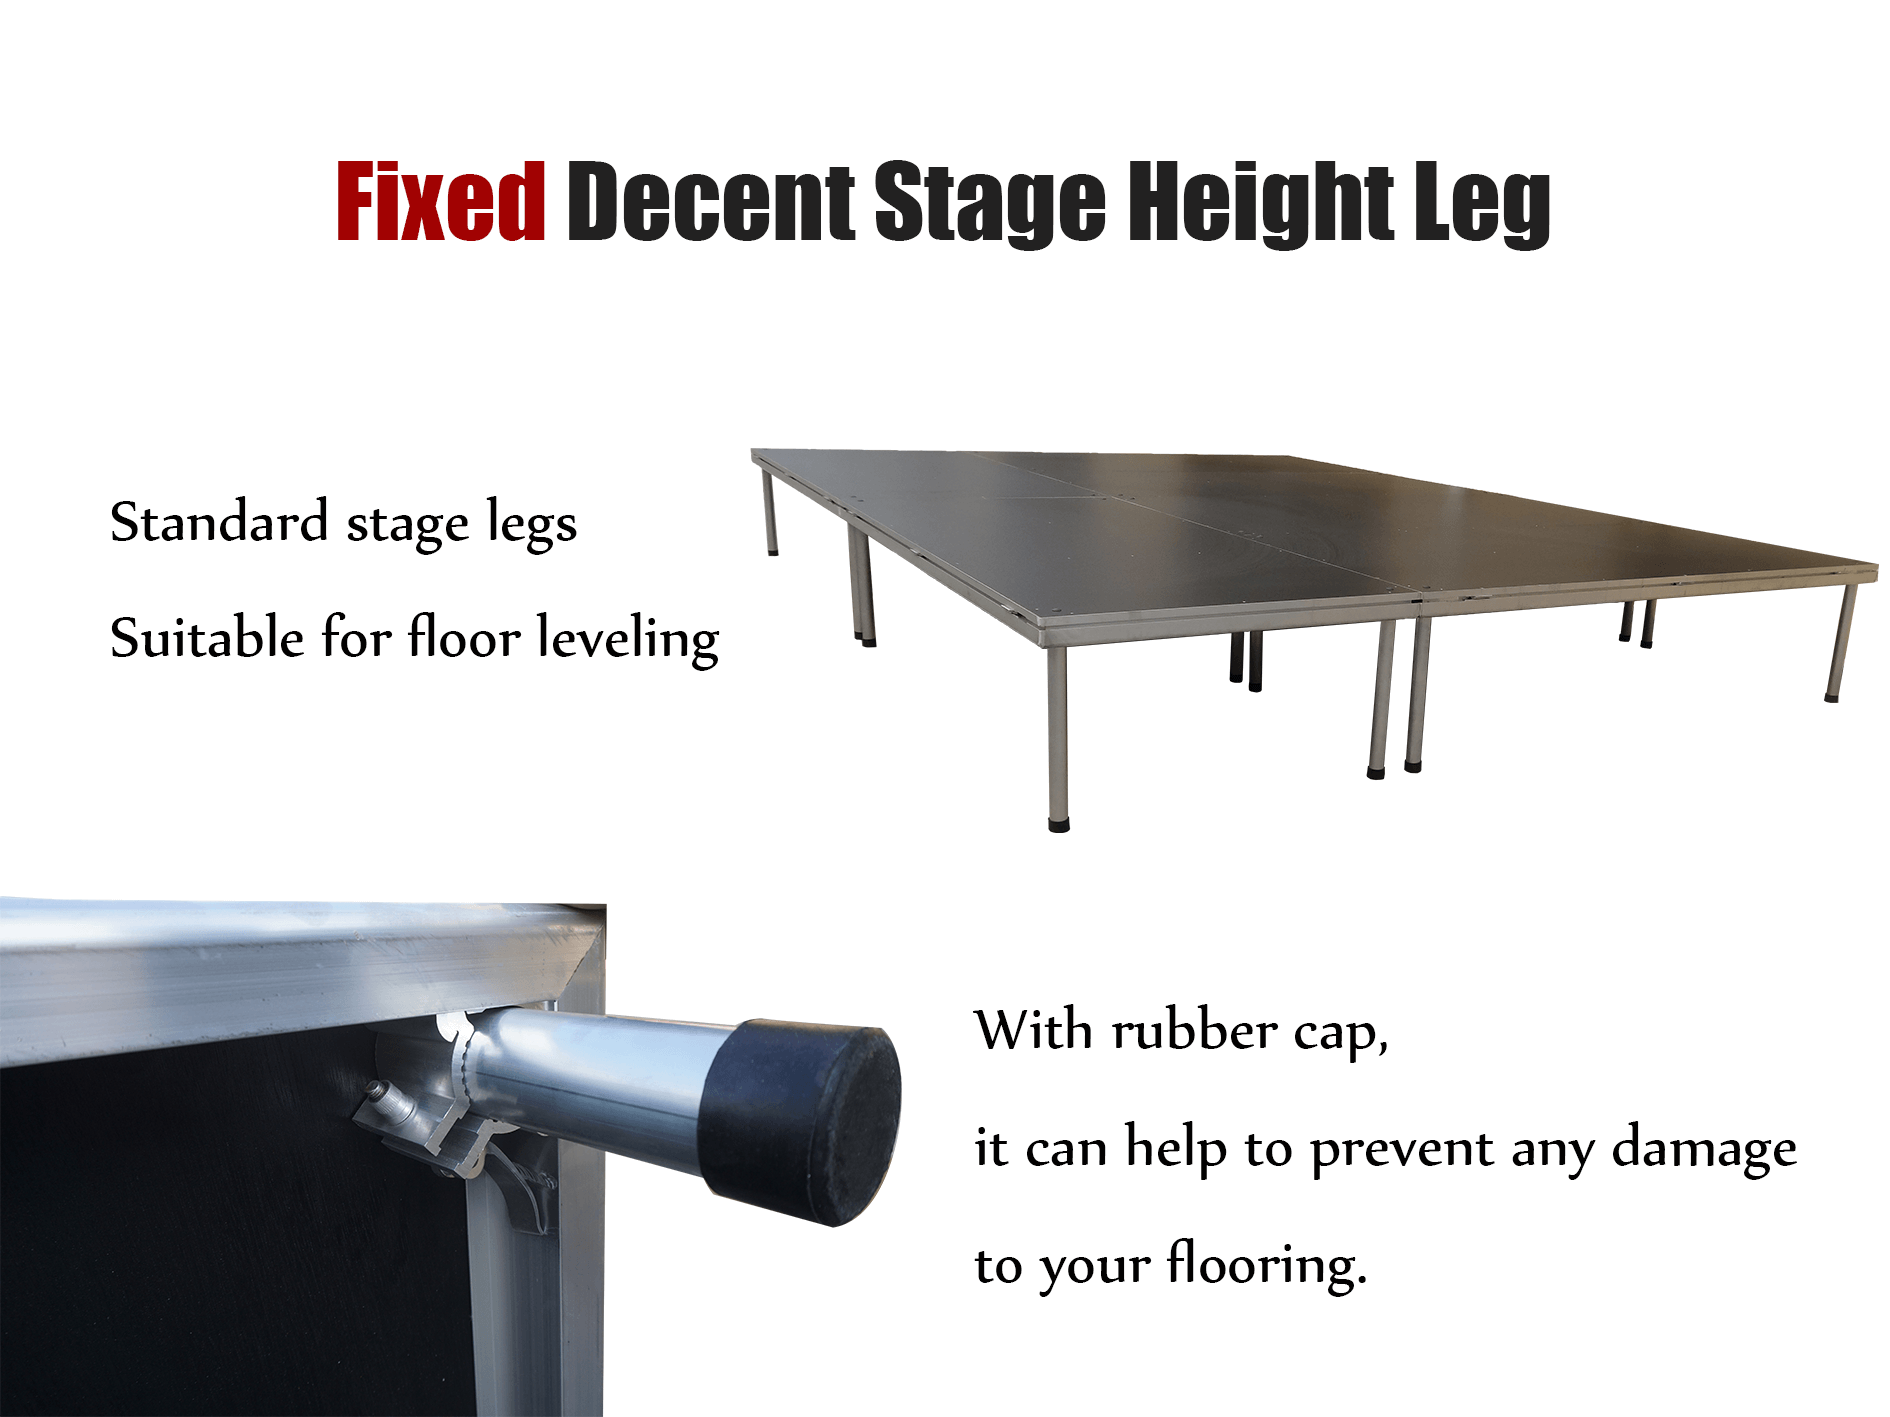 fixed decent stage leg